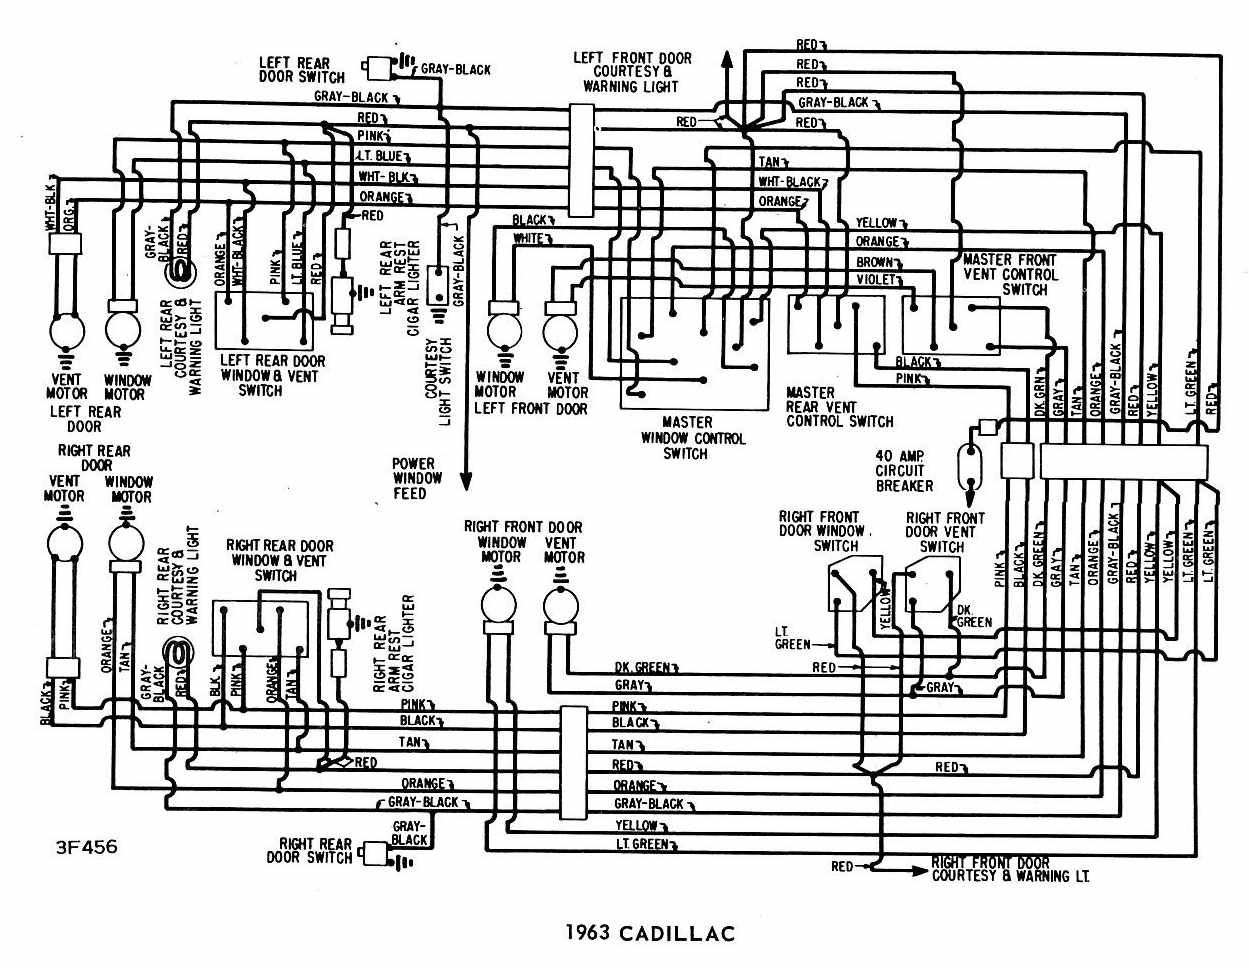 1962 cadillac wiring diagram wiring diagram name 1961 cadillac wiring diagram [ 1249 x 968 Pixel ]